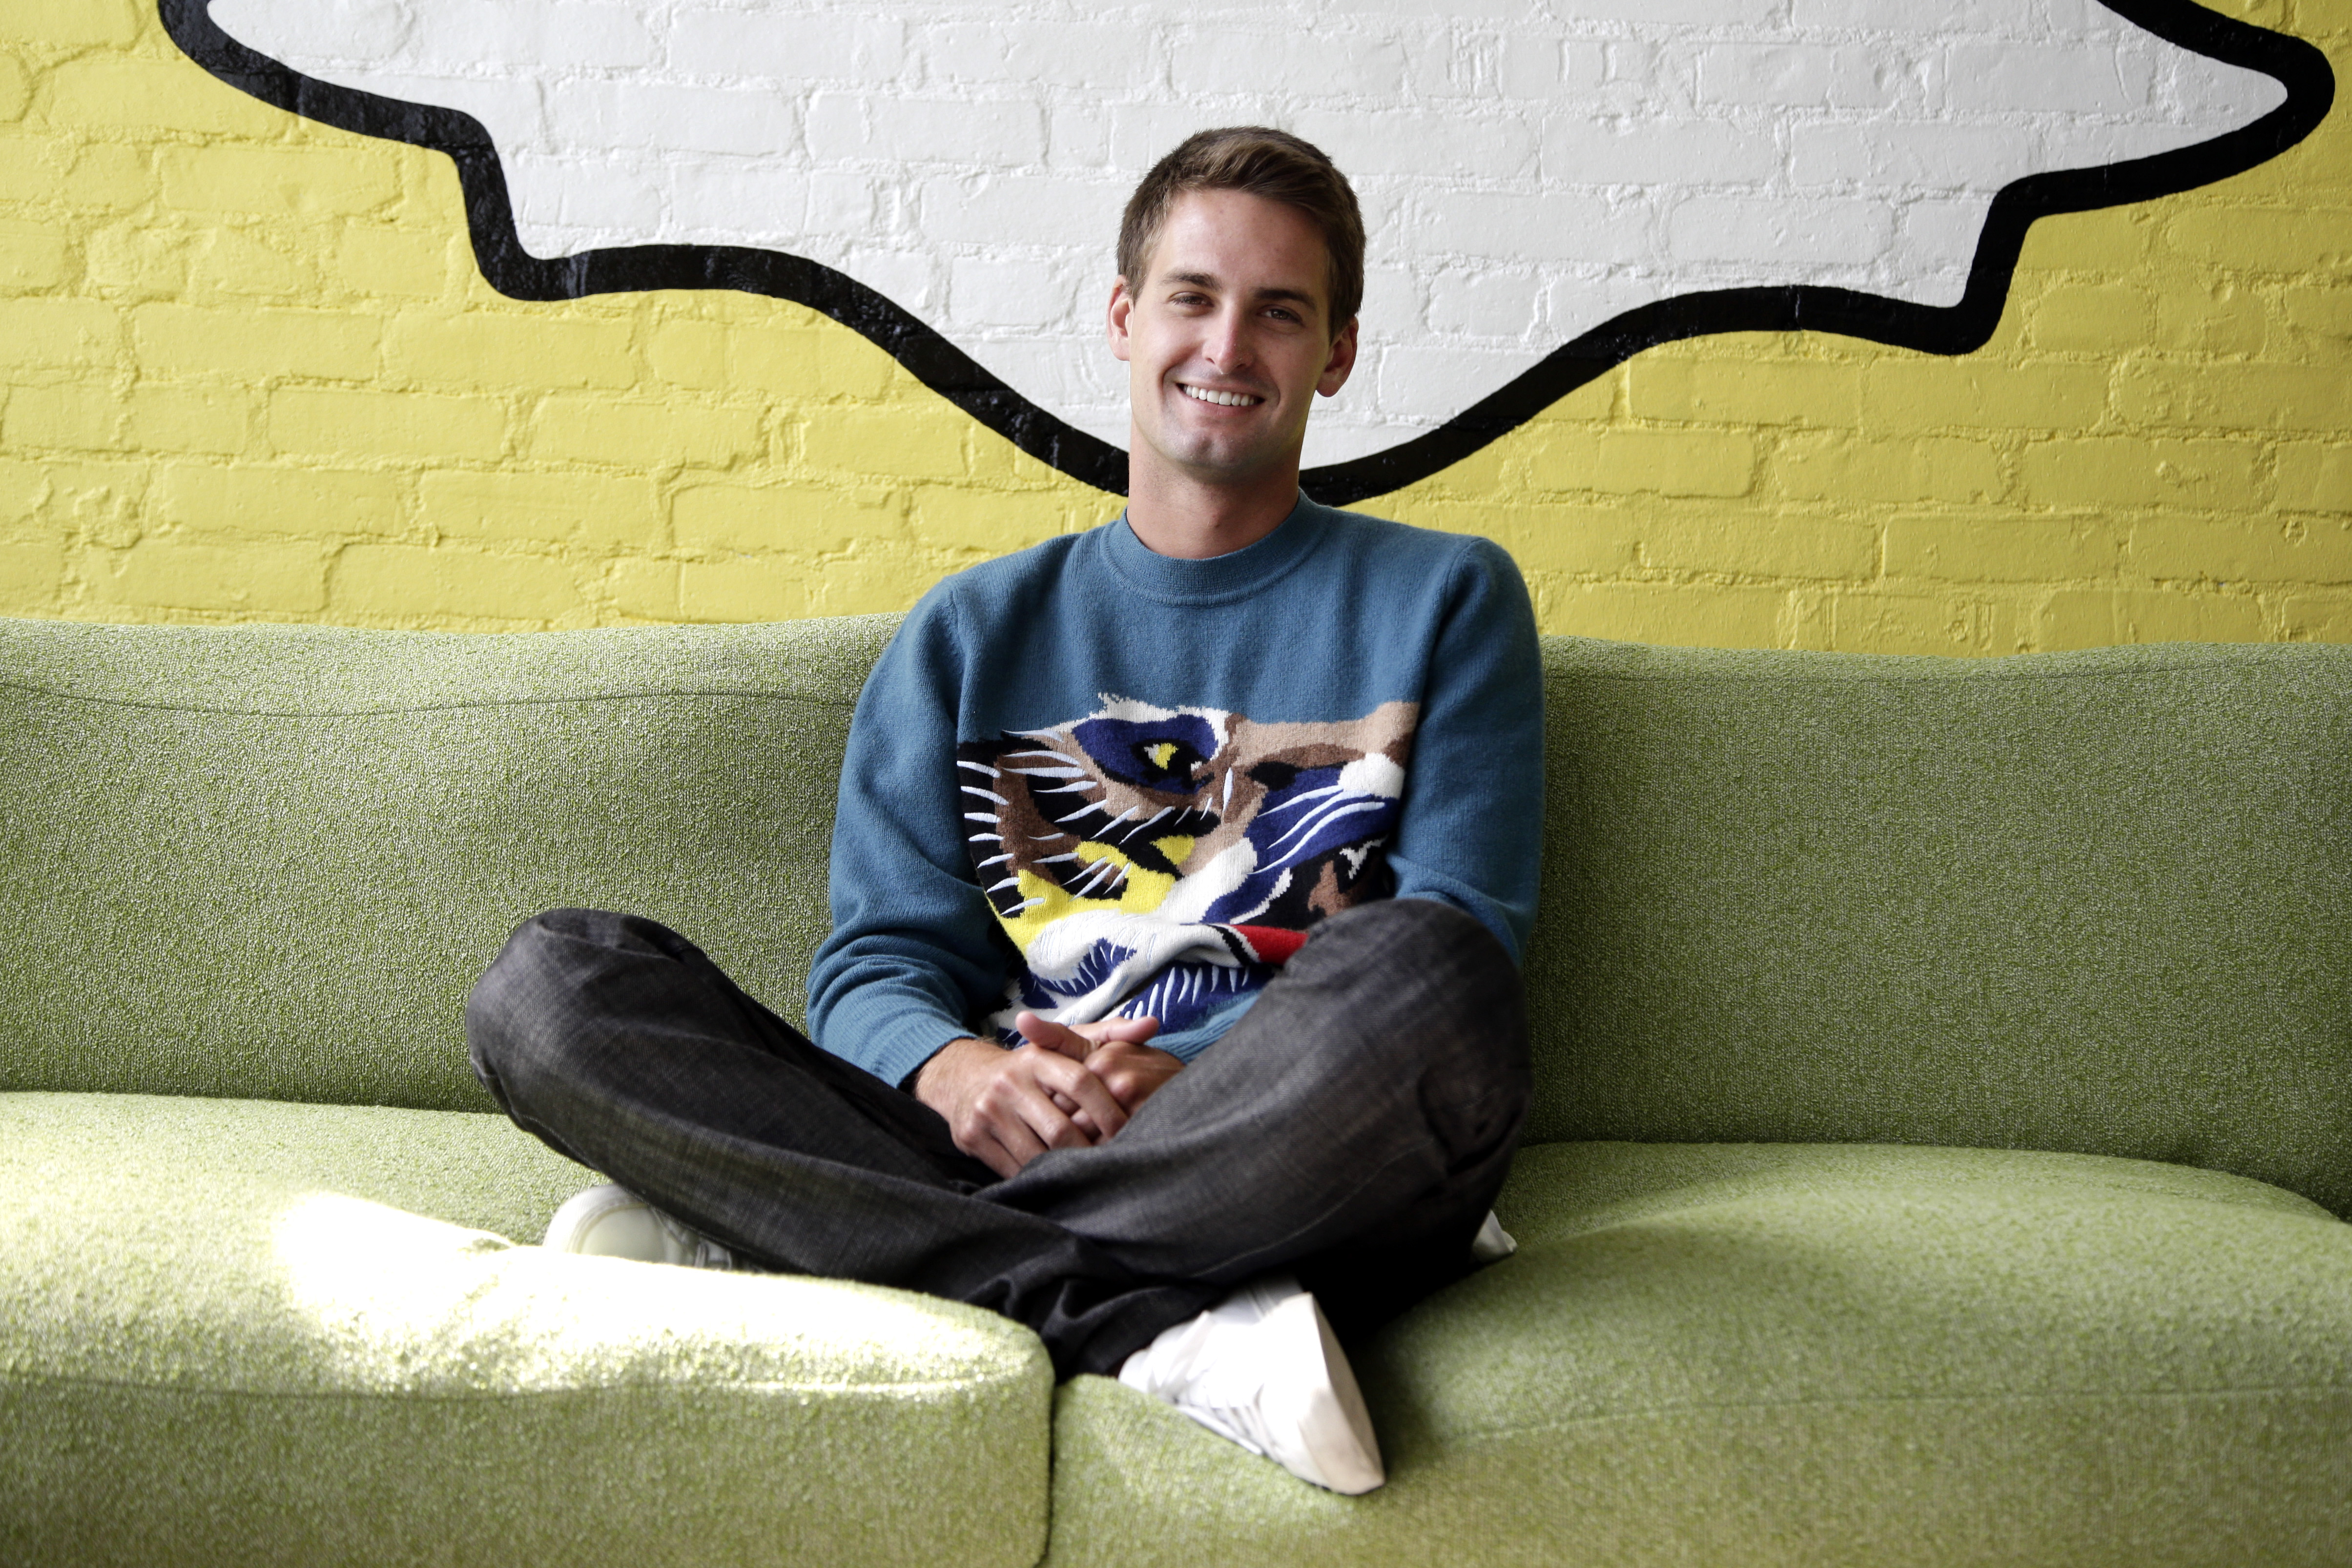 Snapchat CEO Evan Spiegel poses for photos, in Los Angeles on Oct. 24, 2013.